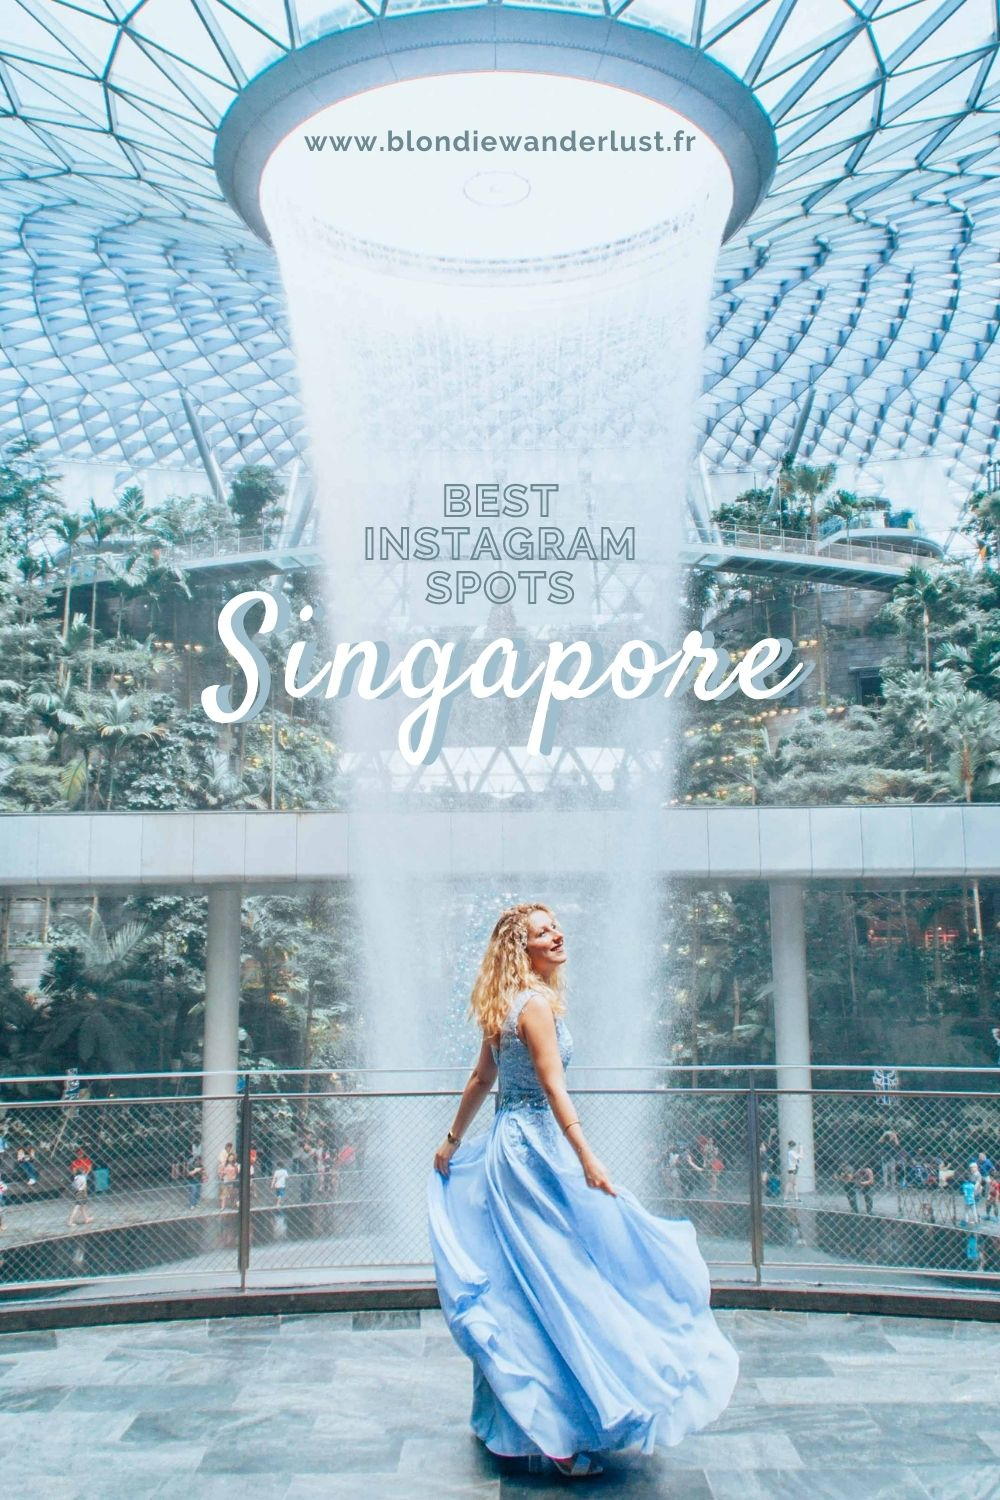 The best instagram spots in Singapore